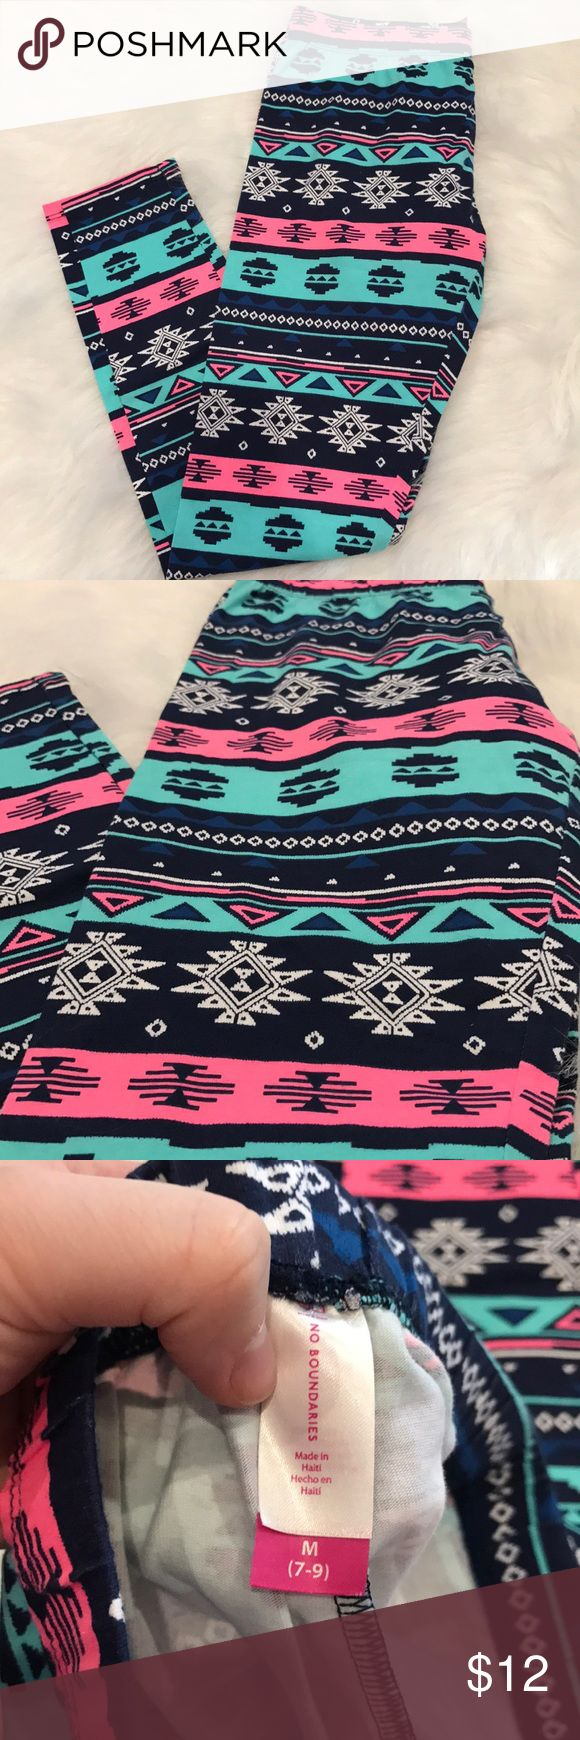 Tribal print leggings Never worn! Beautiful bright colored tribal print leggings❤️💝💜 size M (7-9) No Boundaries Pants Leggings